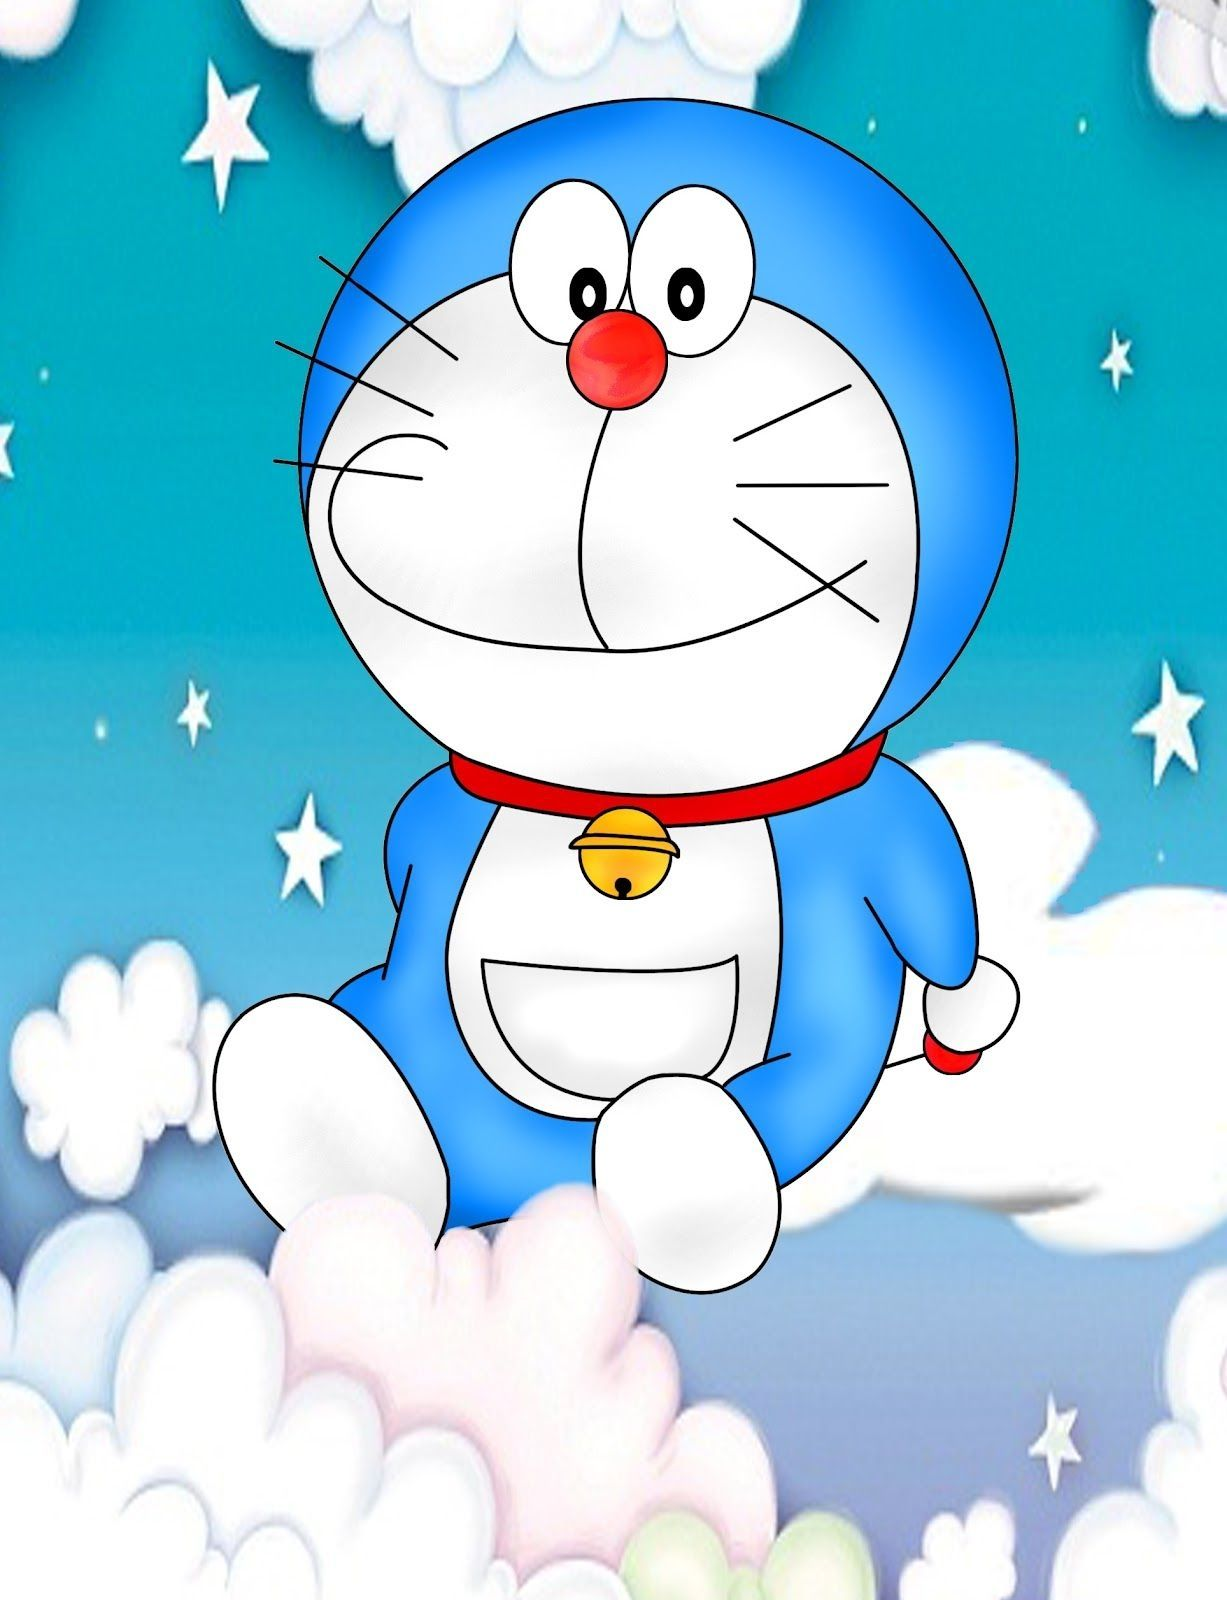 Doraemon Hd Wallpapers Wallpaper Cave Intended For